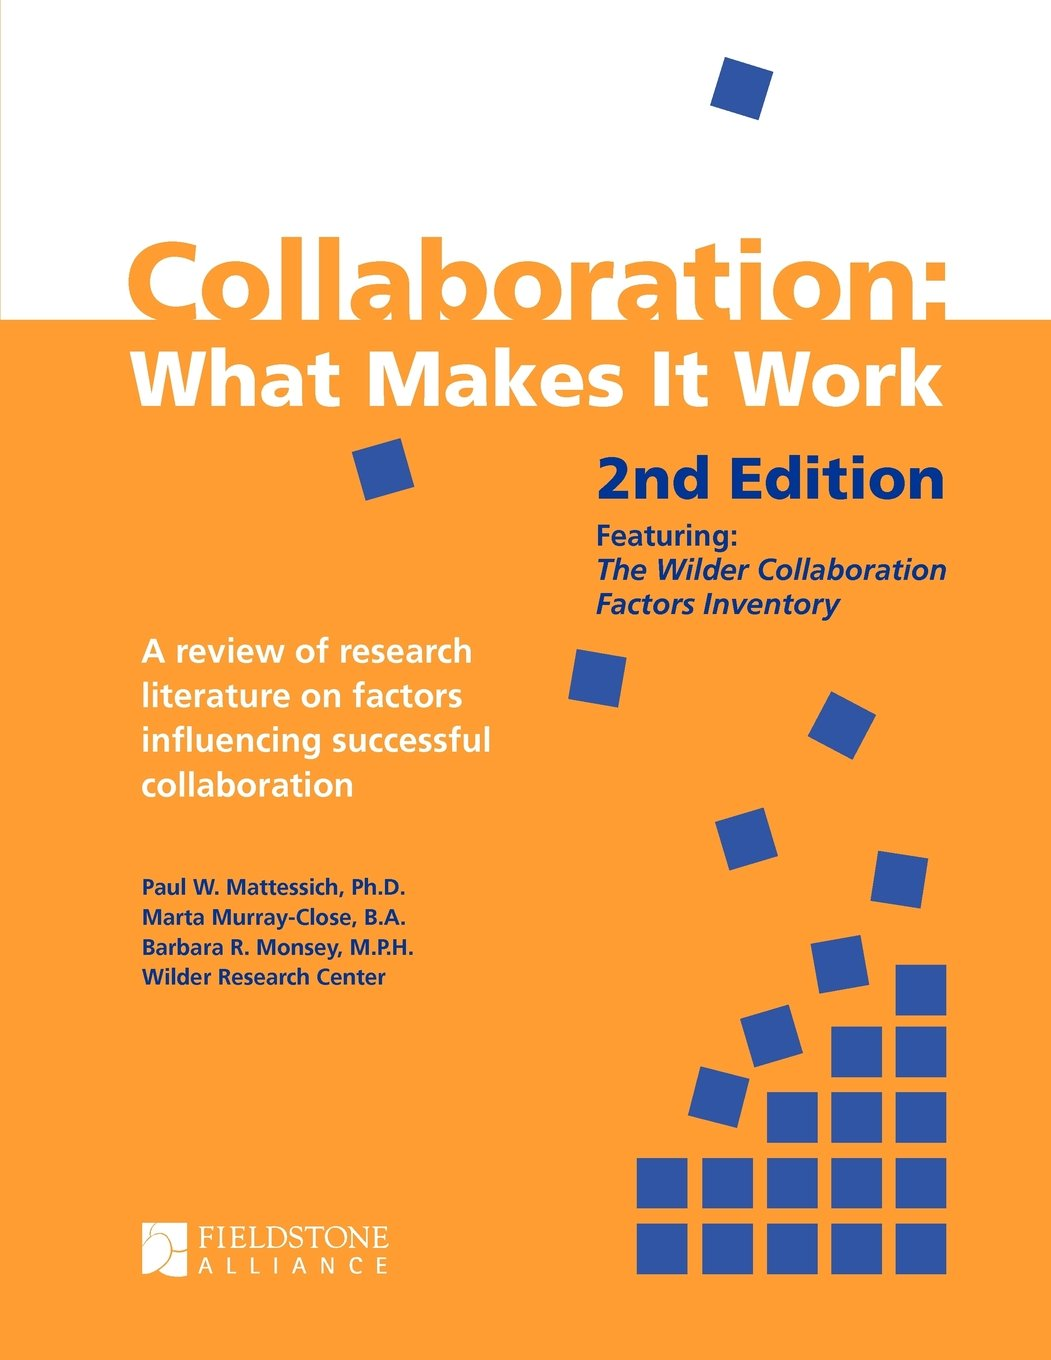 Literature craft and voice 2nd edition - Collaboration What Makes It Work 2nd Edition A Review Of Research Literature On Factors Influencing Successful Collaboration Paul W Mattessich